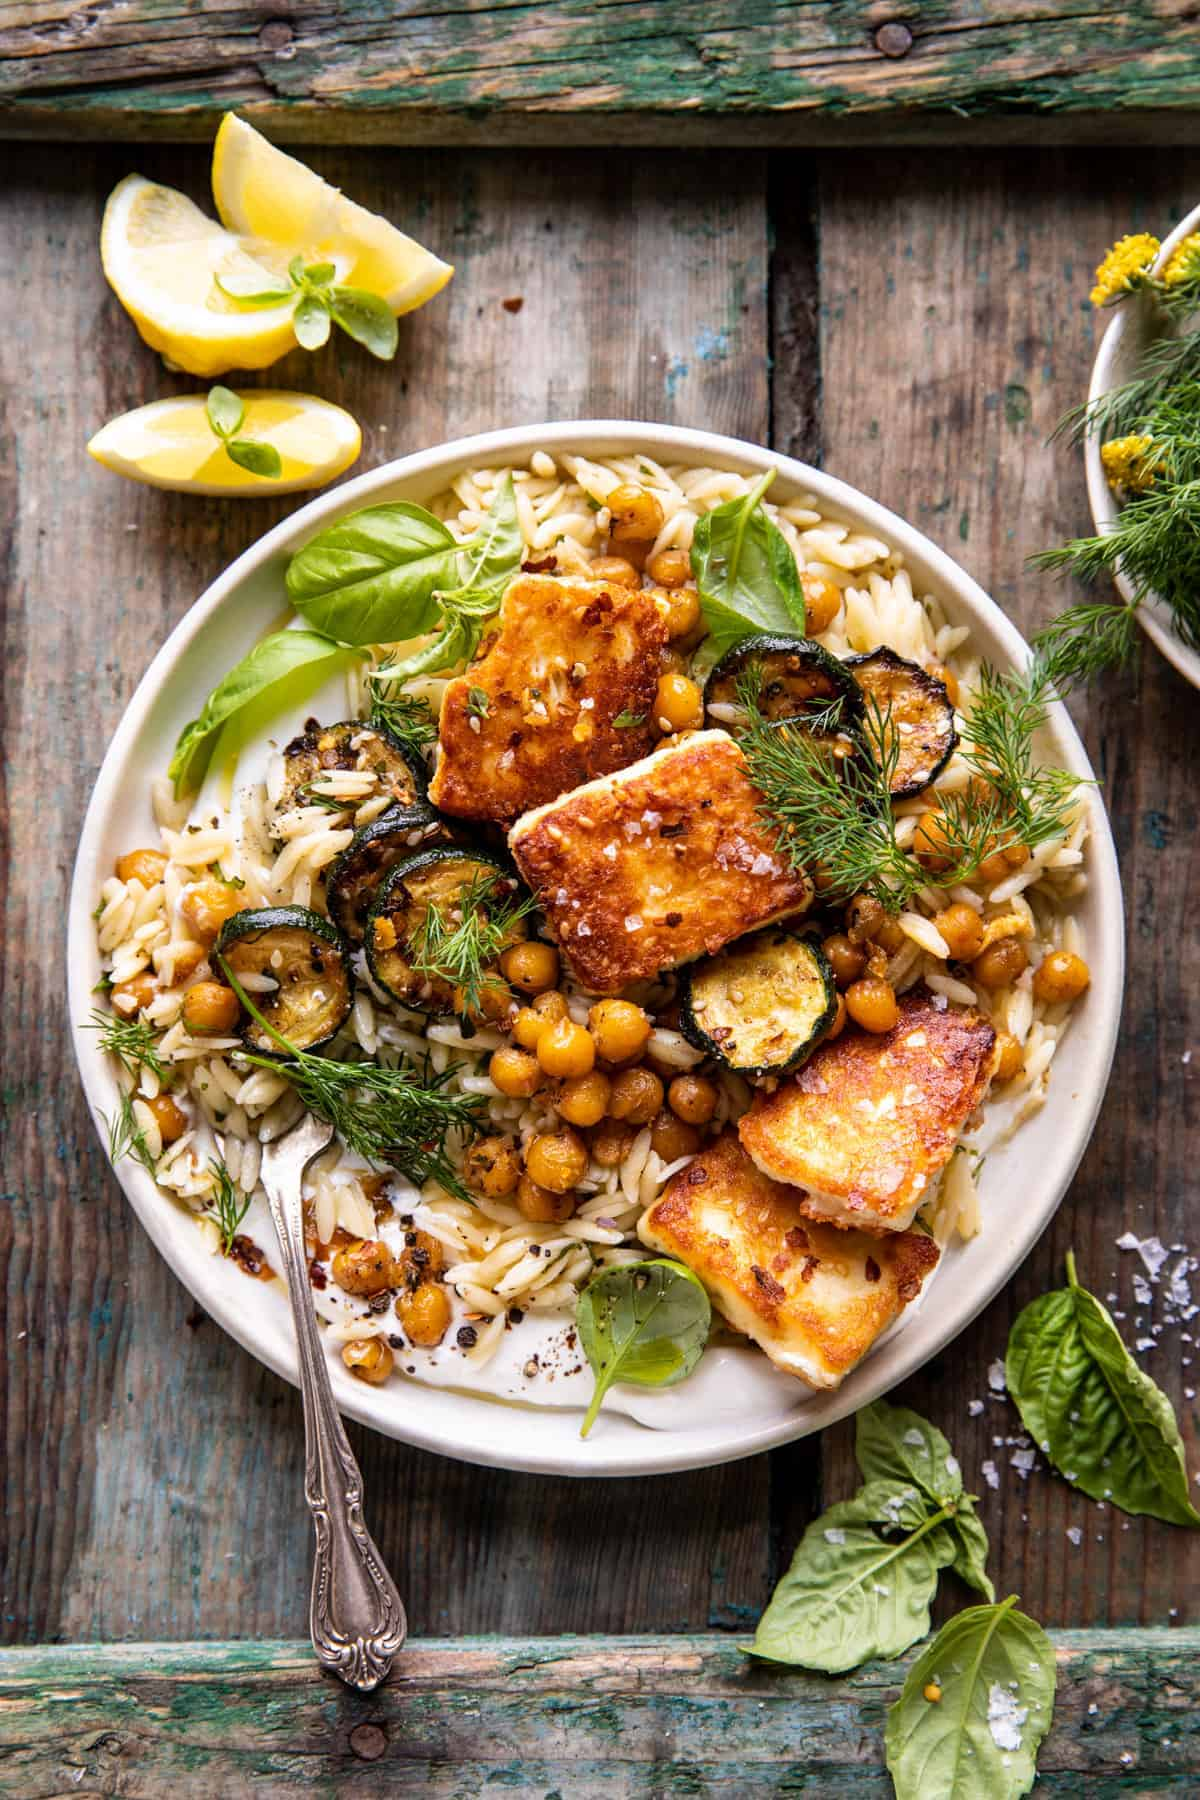 Weekly meal plan ideas: Crispy Lemon Feta with Spiced Chickpeas and Basil Orzo at Halfbaked Harvest